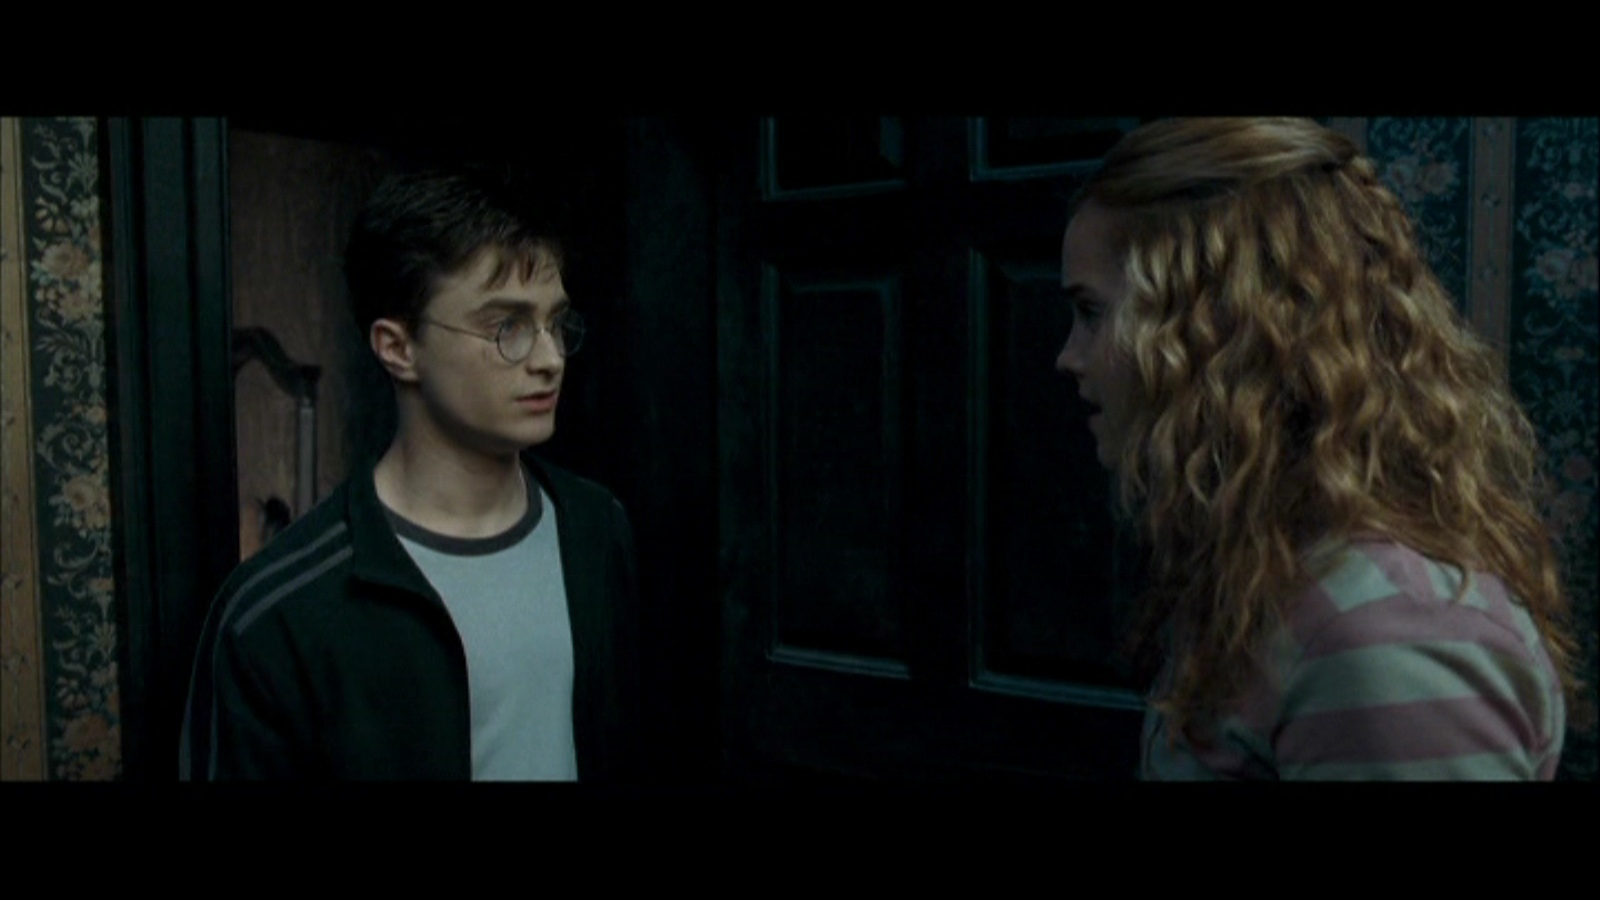 Harry and hermione images harmony order of the phoenix - Hermione granger harry potter and the order of the phoenix ...